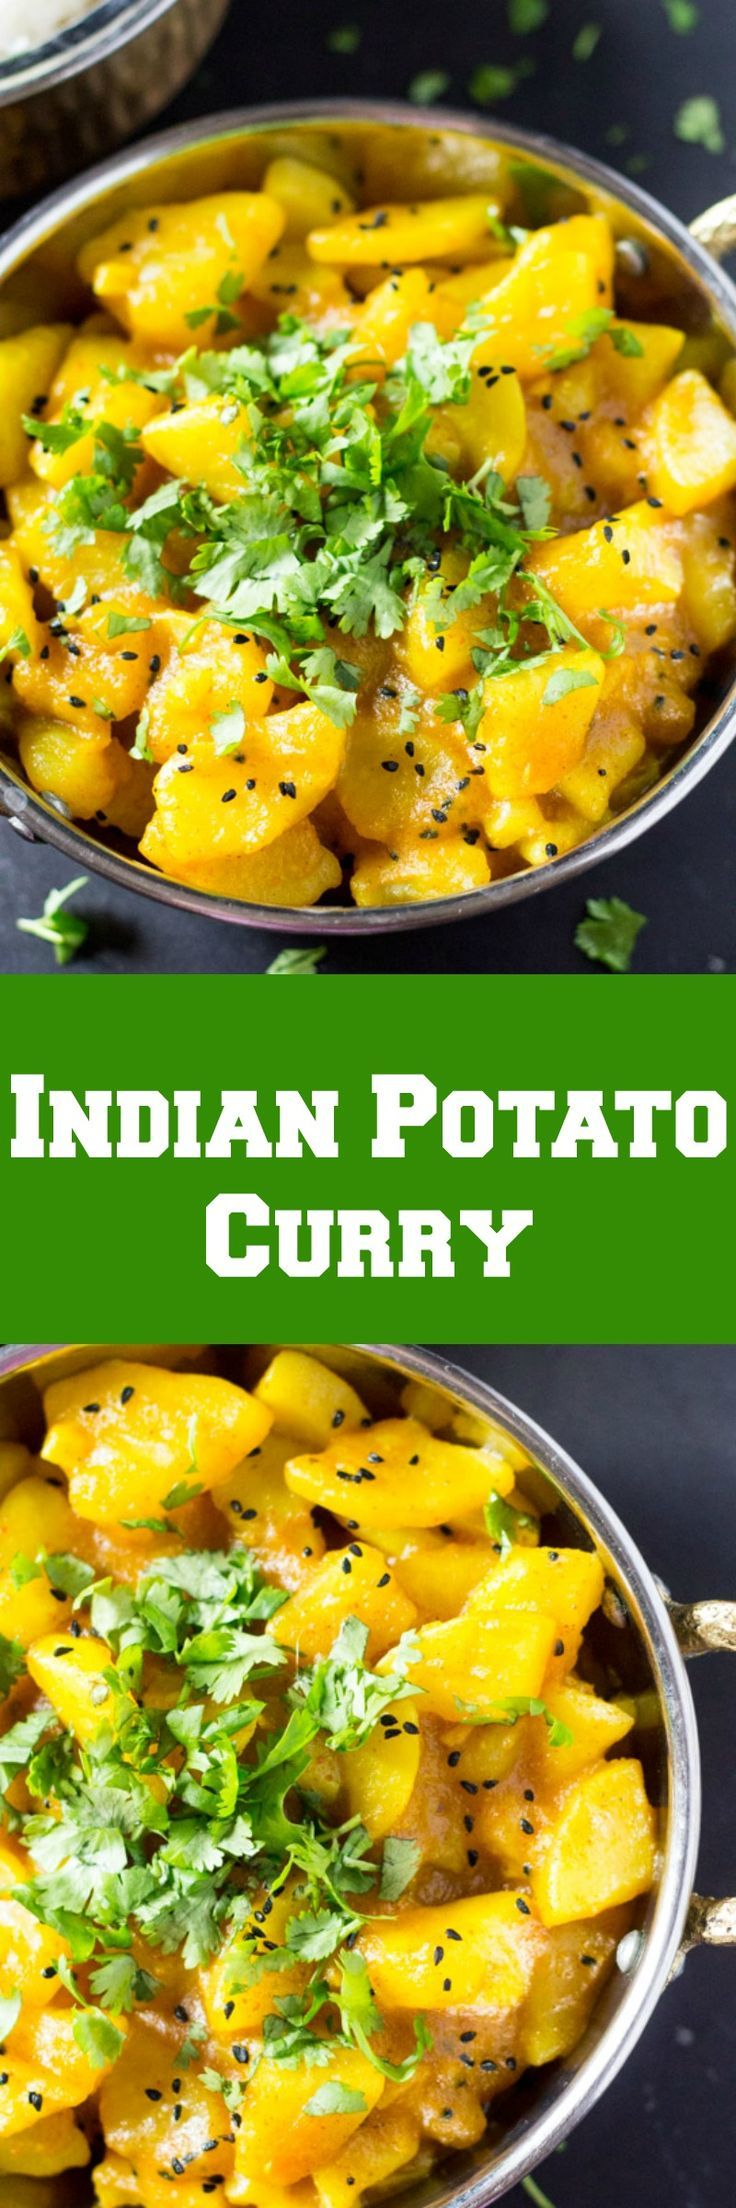 This six ingredient potato curry is super easy and delicious! It doesn't require any special indian spices and is ready in just 30 minutes!